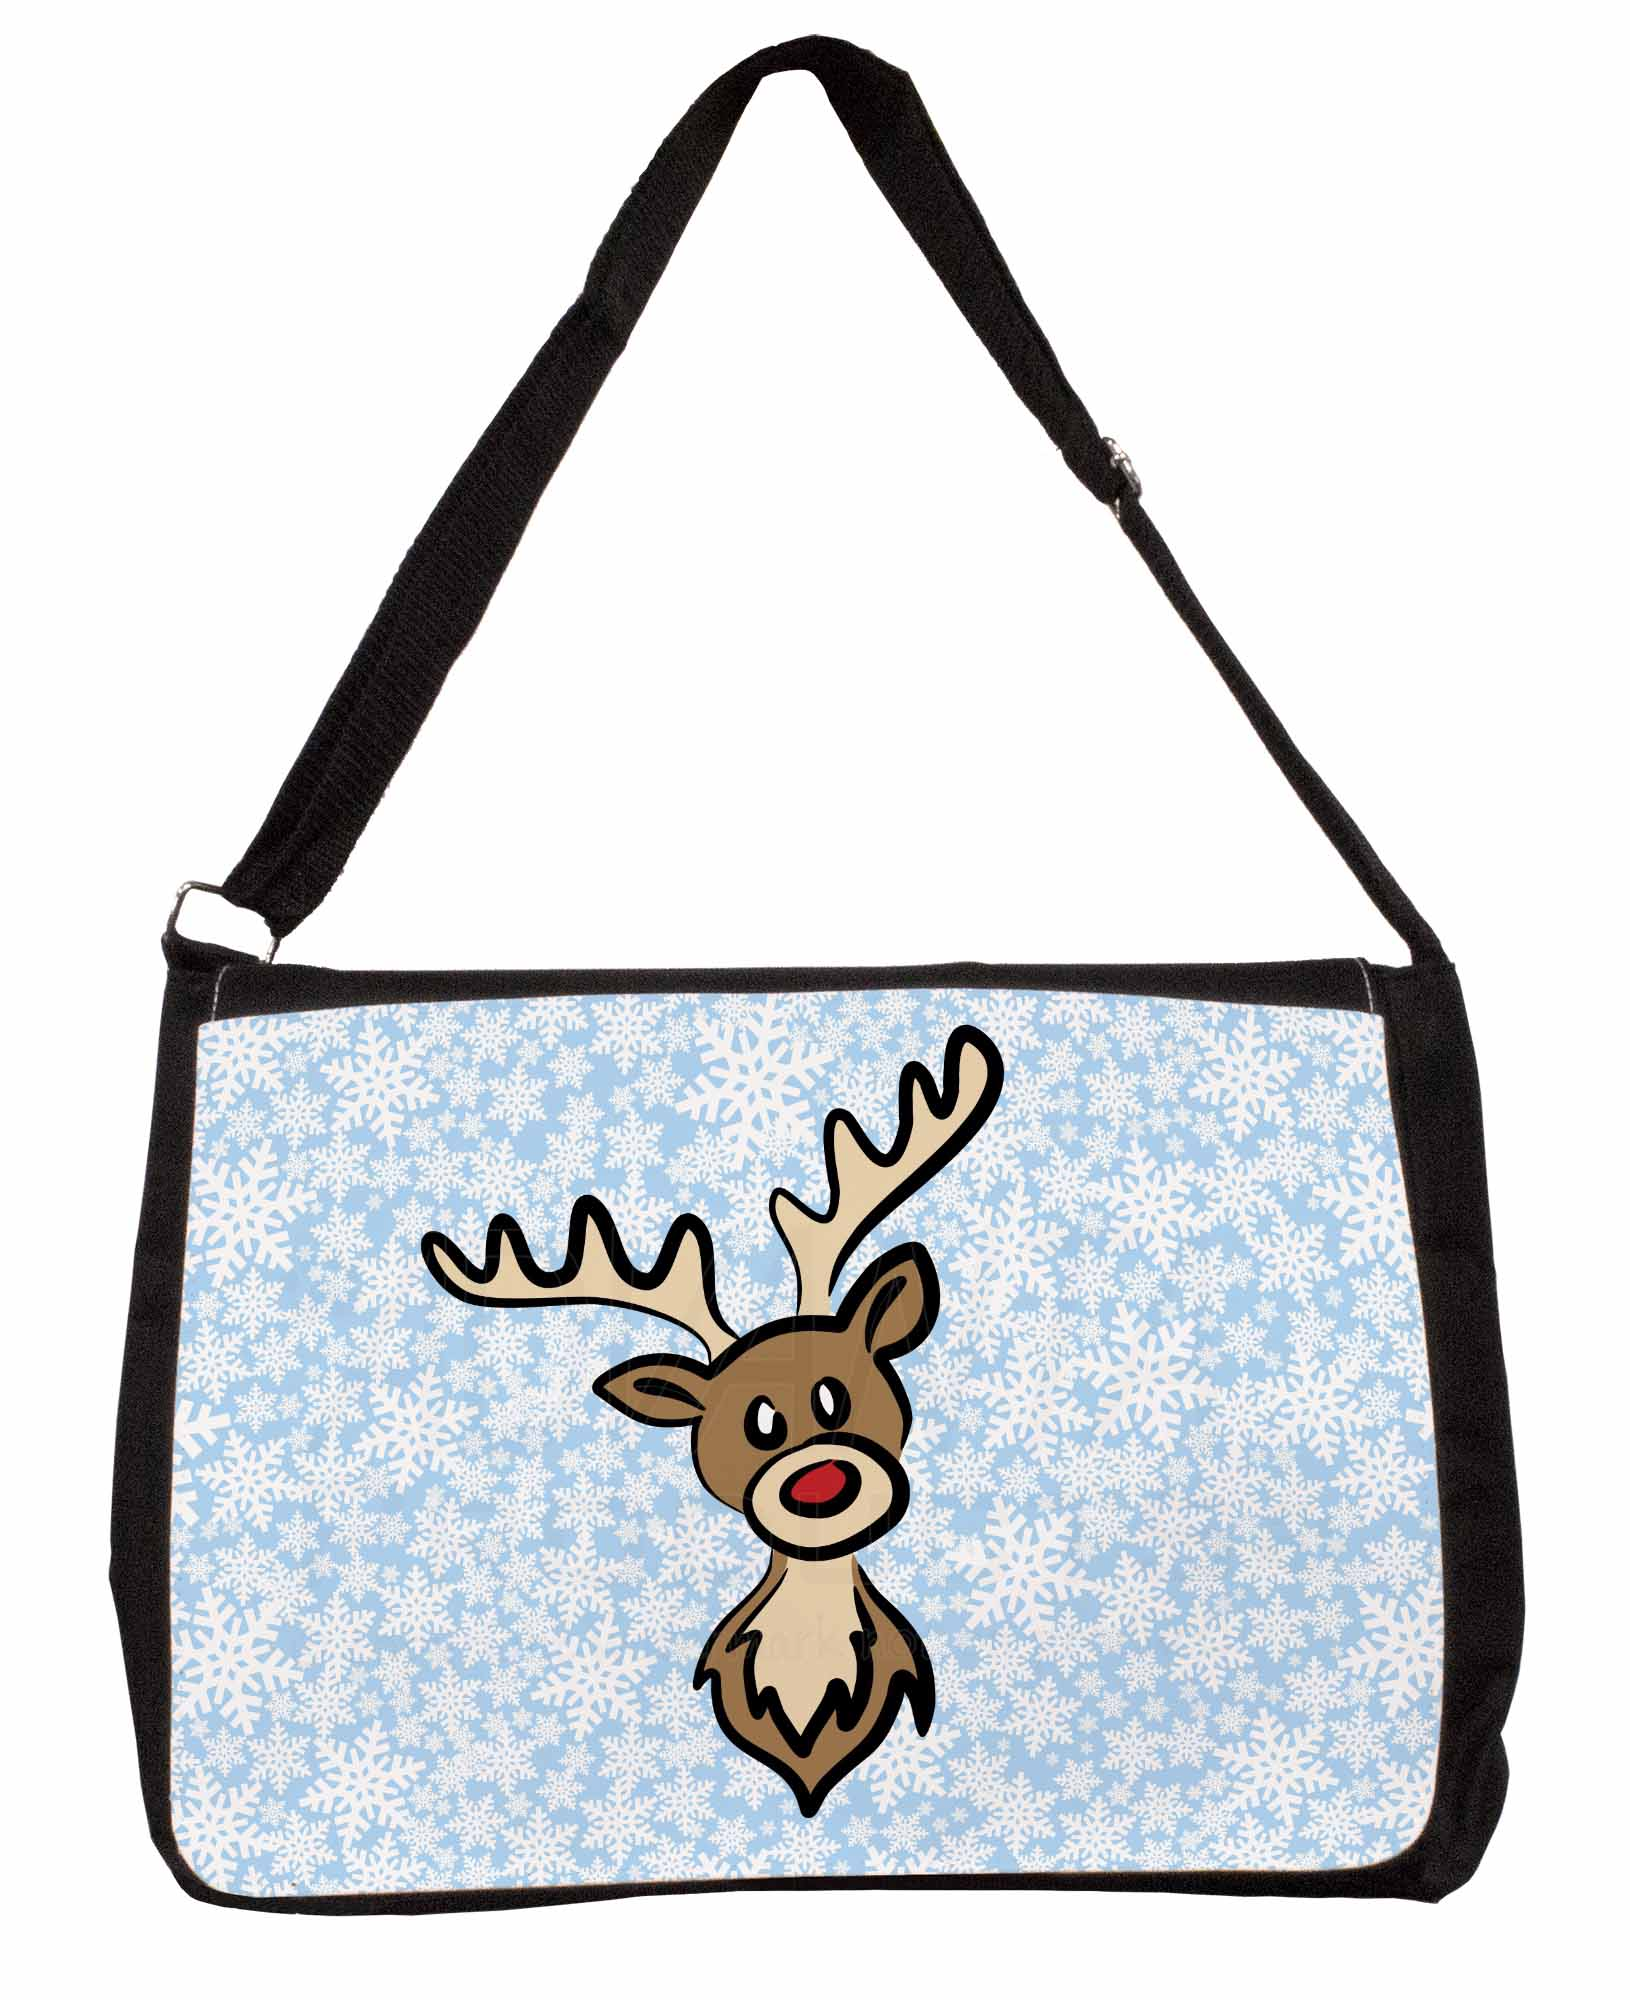 Realistico Rudolph The Red Nosed Reindeer Large Nero Laptop Borsa A Tracolla S, Natale - 15sb-